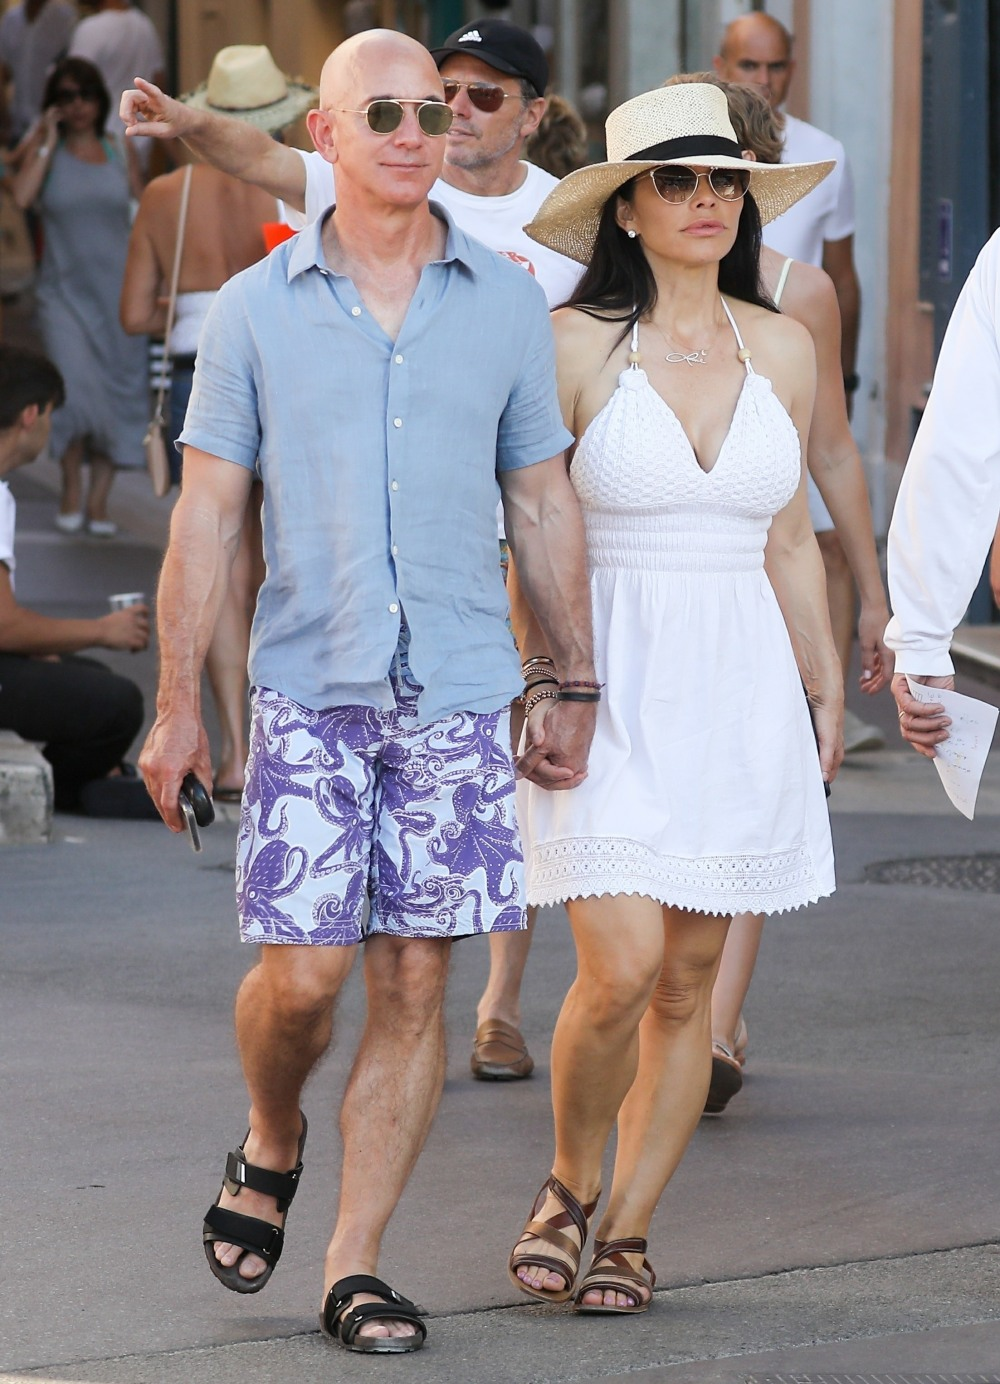 Amazon Ceo Jeff Bezos and Lauren Sanchez display some tender PDA during vacation in St. Tropez